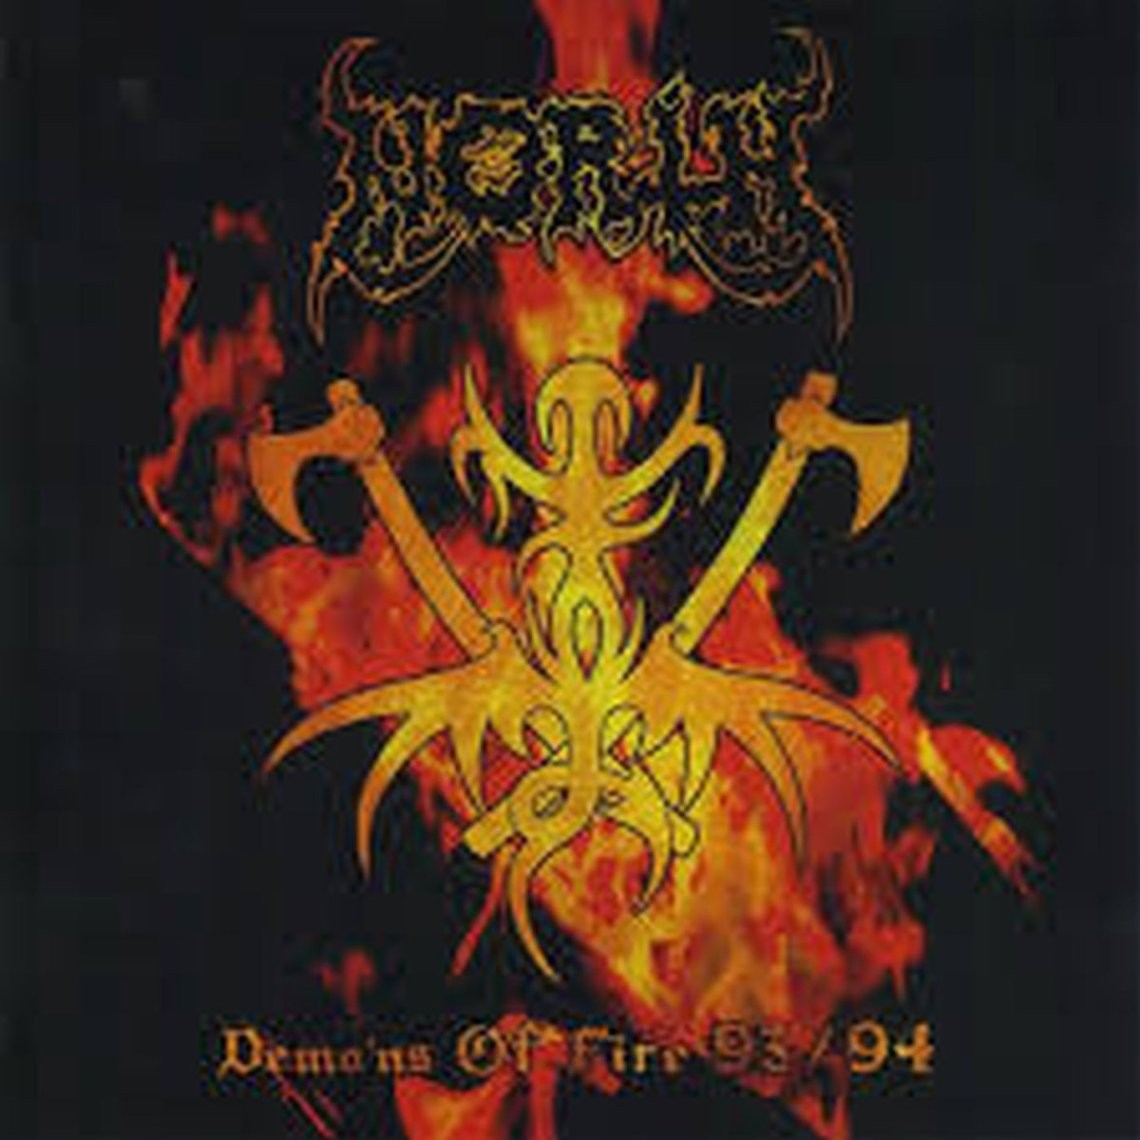 North – Demo`ns Of Fire 93/94